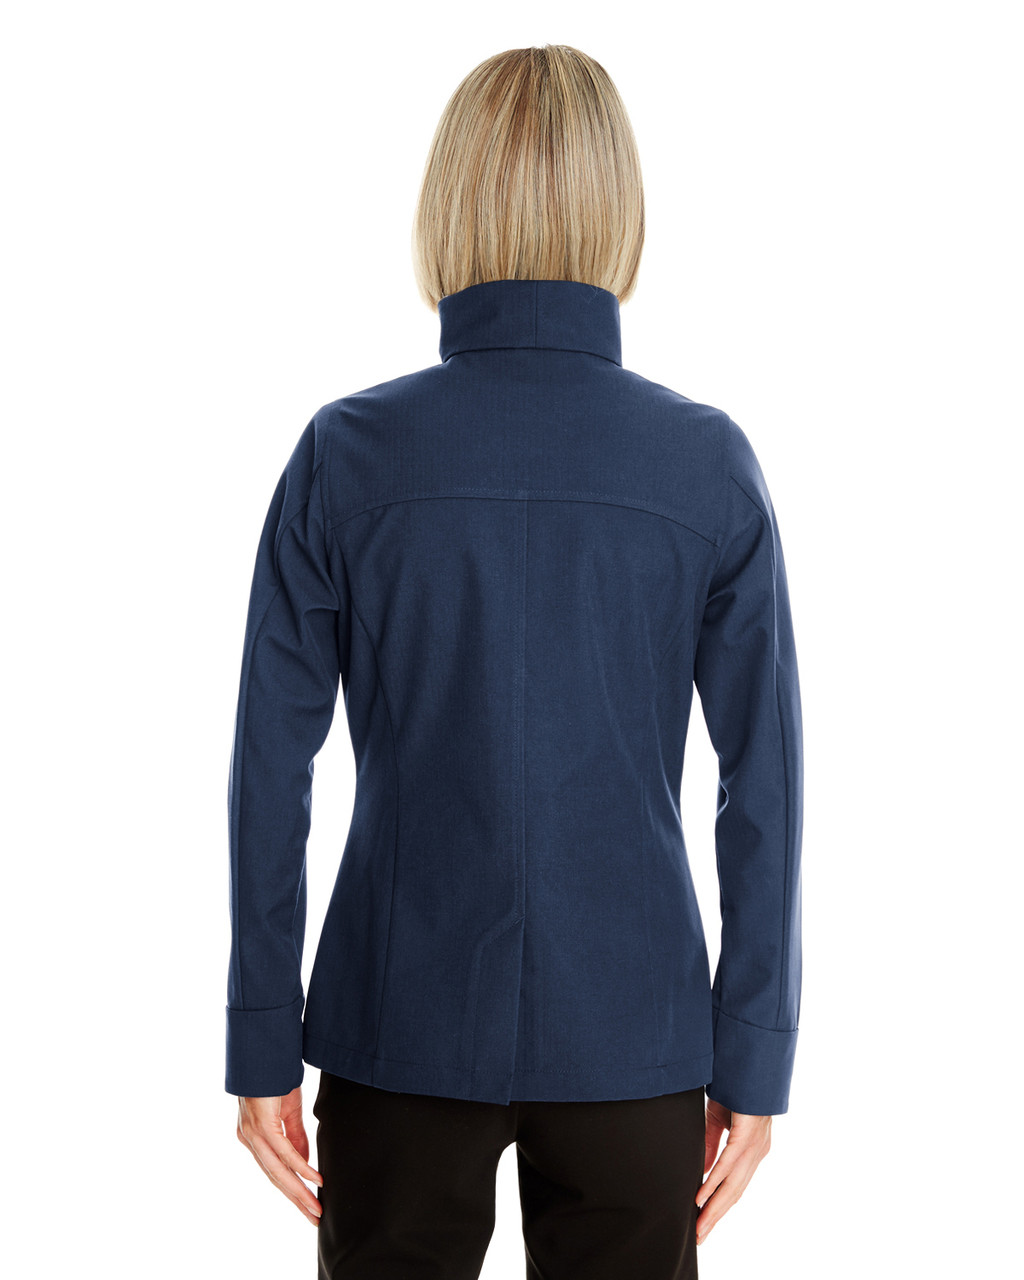 Navy - Back - NE705W Ash City - North End Ladies' Edge Soft Shell Jacket with Fold-Down Collar | Blankclothing.ca